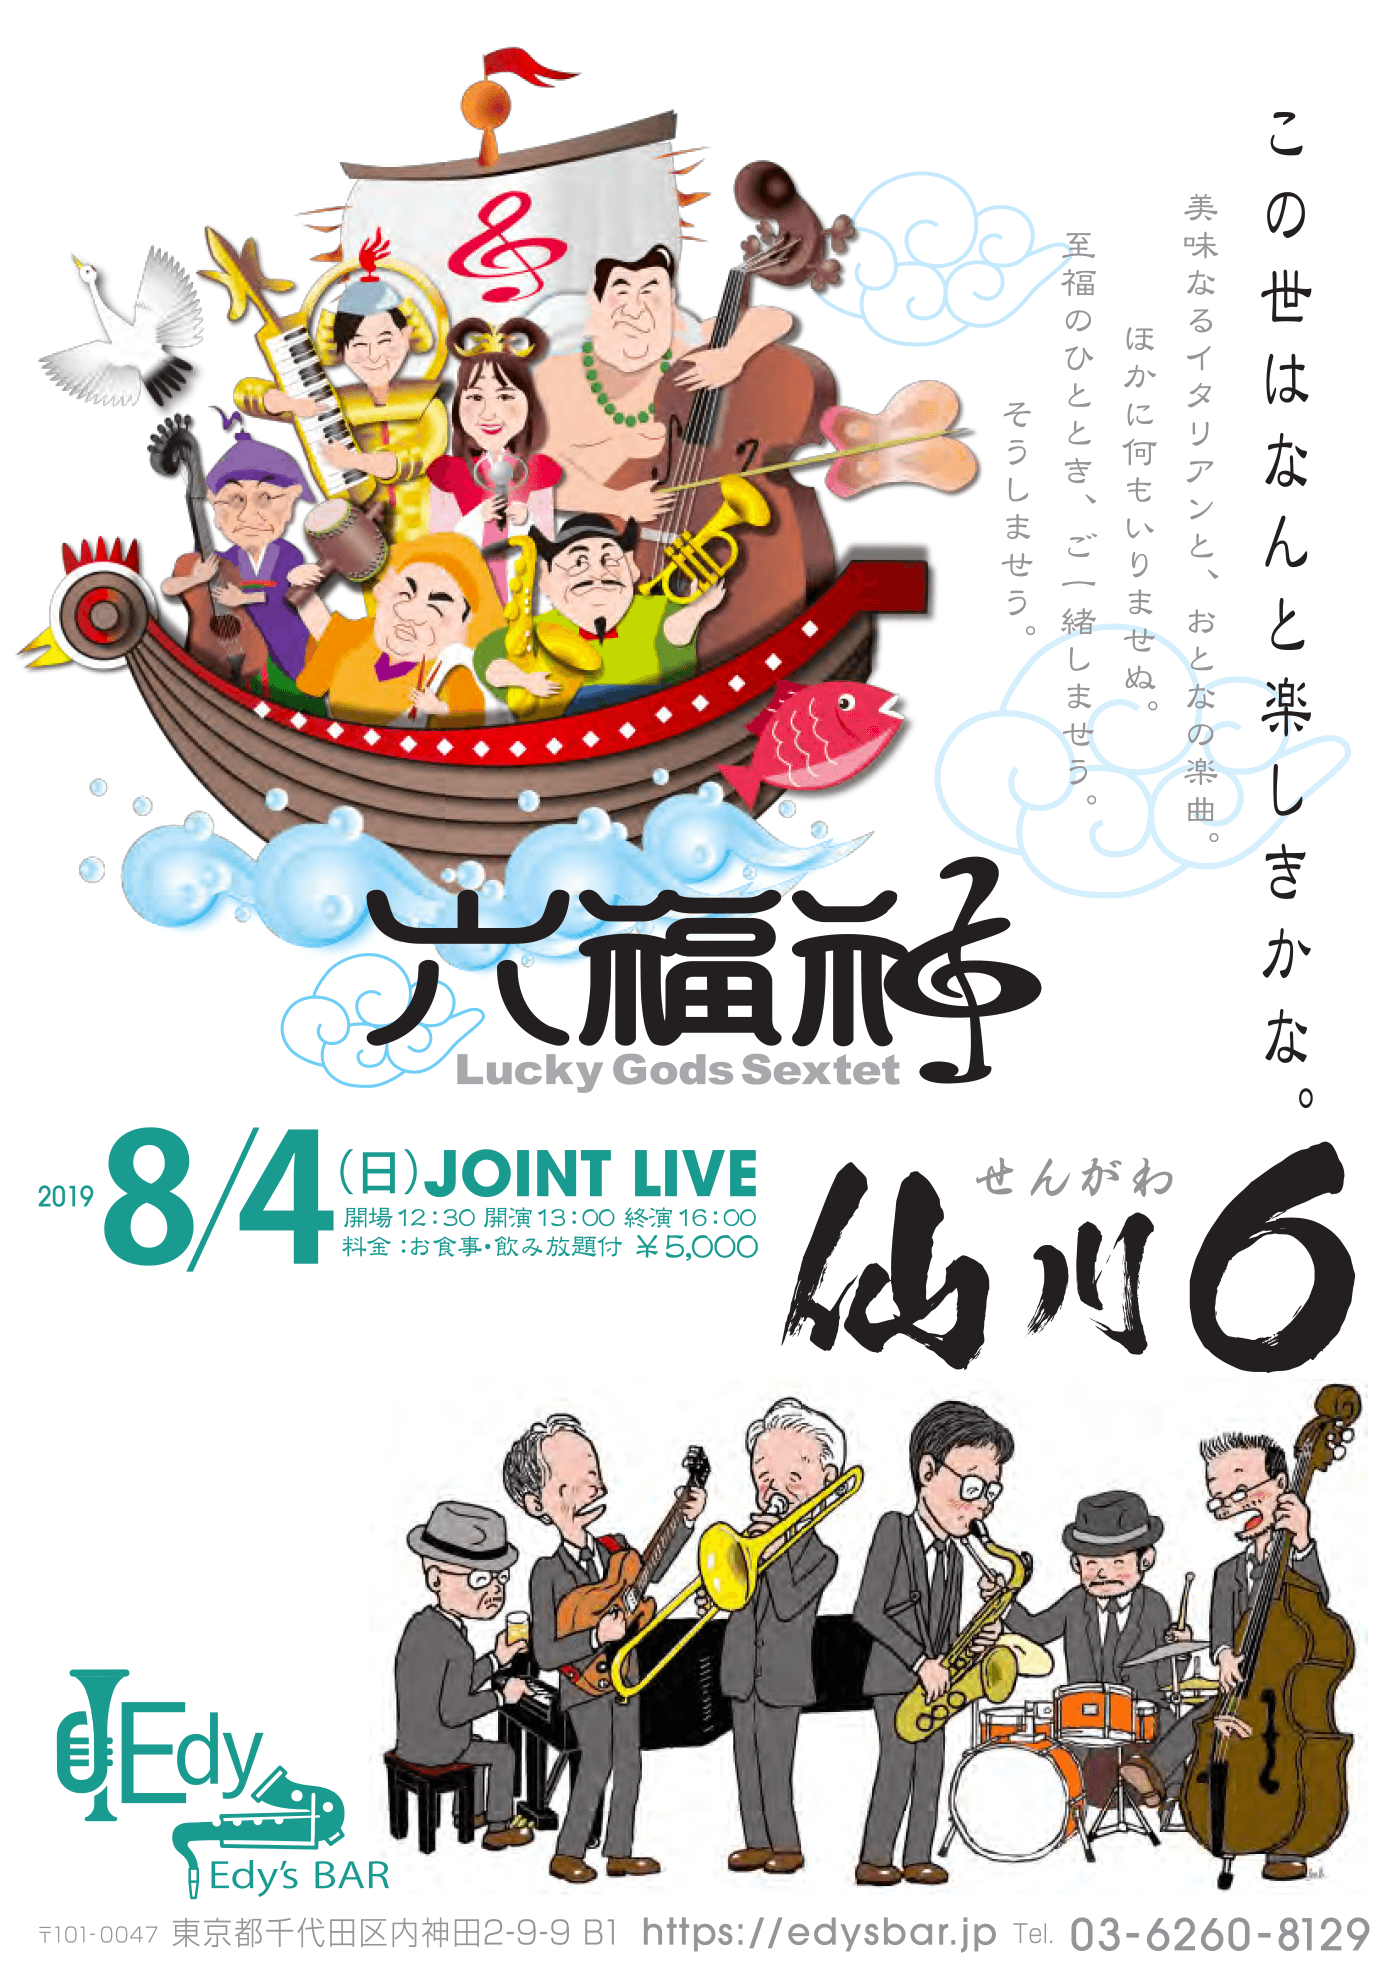 20190804_JointLive_01